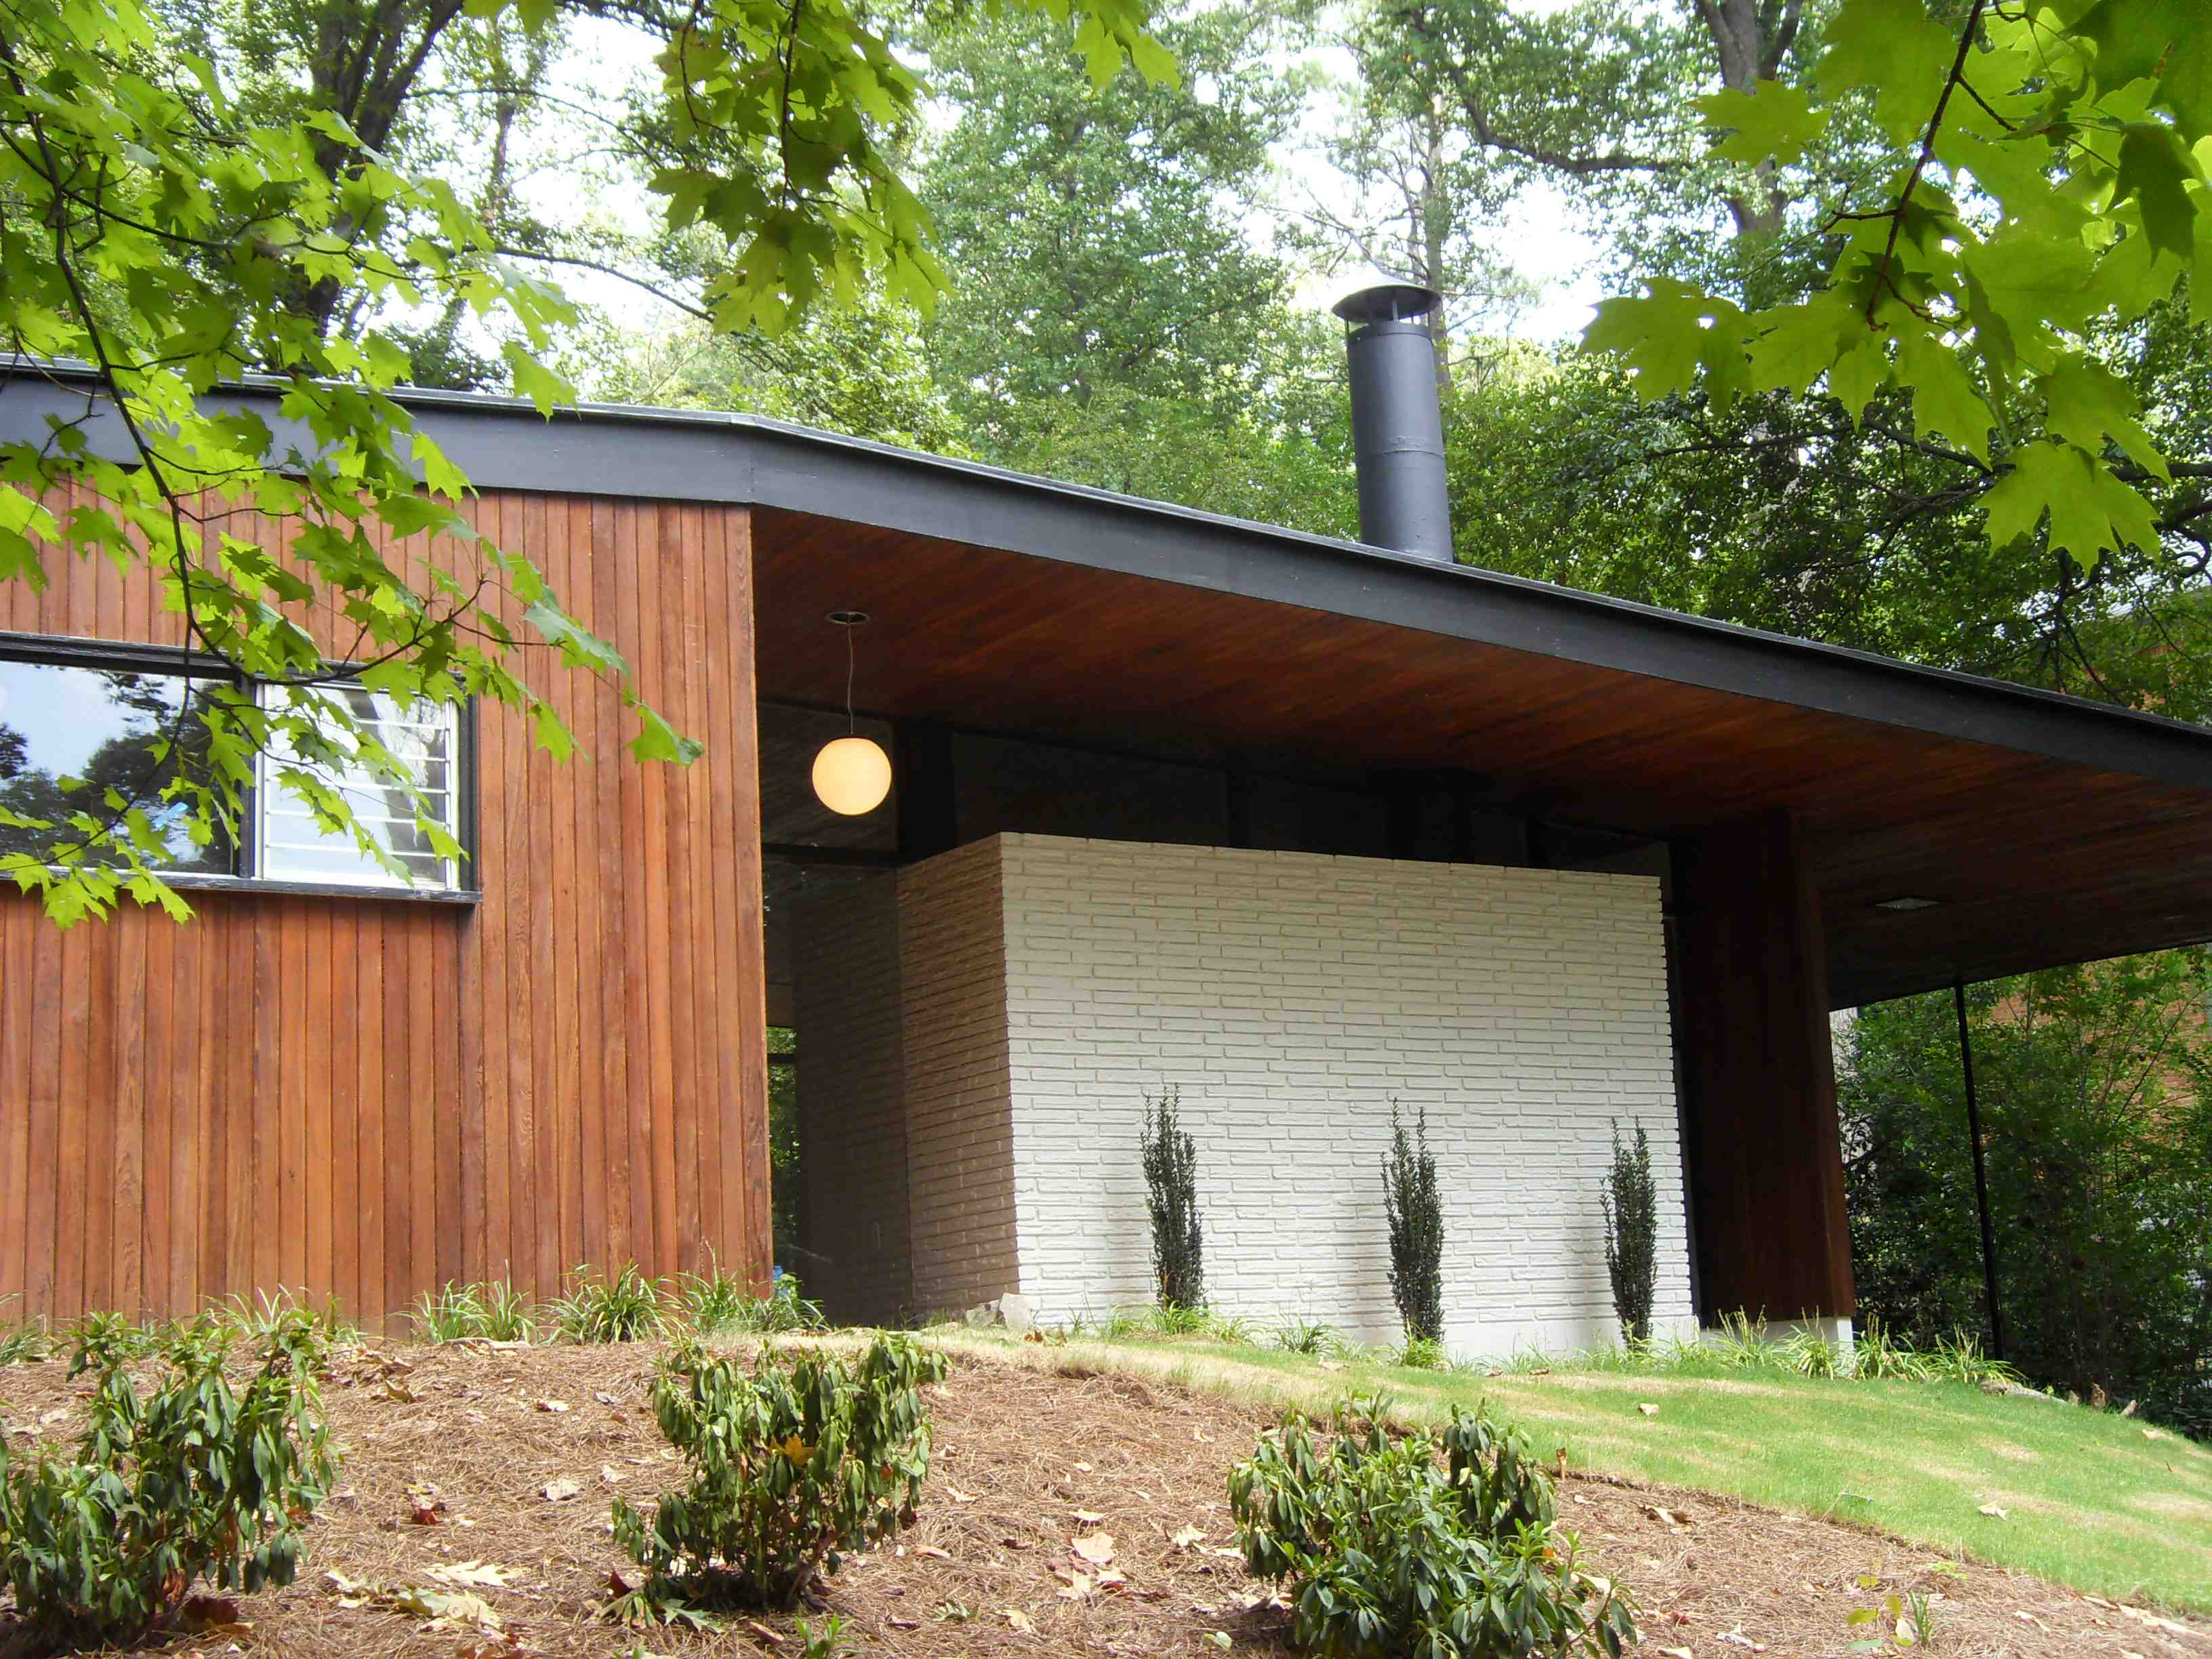 Modern atlanta homes for sale archives domorealty Modern houses in atlanta